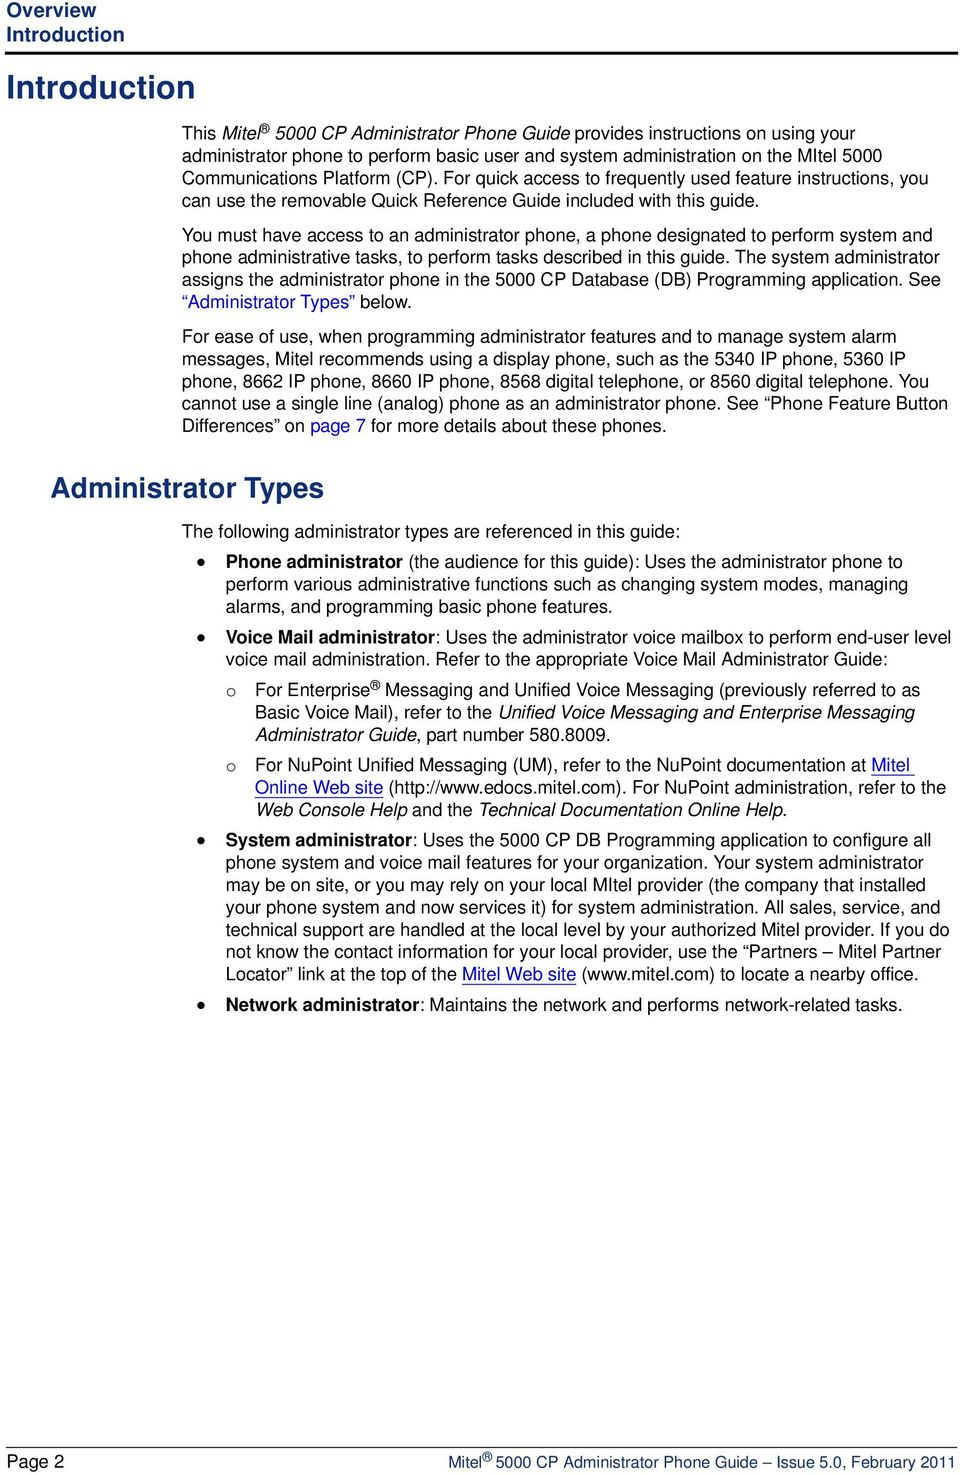 You must have access to an administrator phone, a phone designated to perform system and phone administrative tasks, to perform tasks described in this guide.